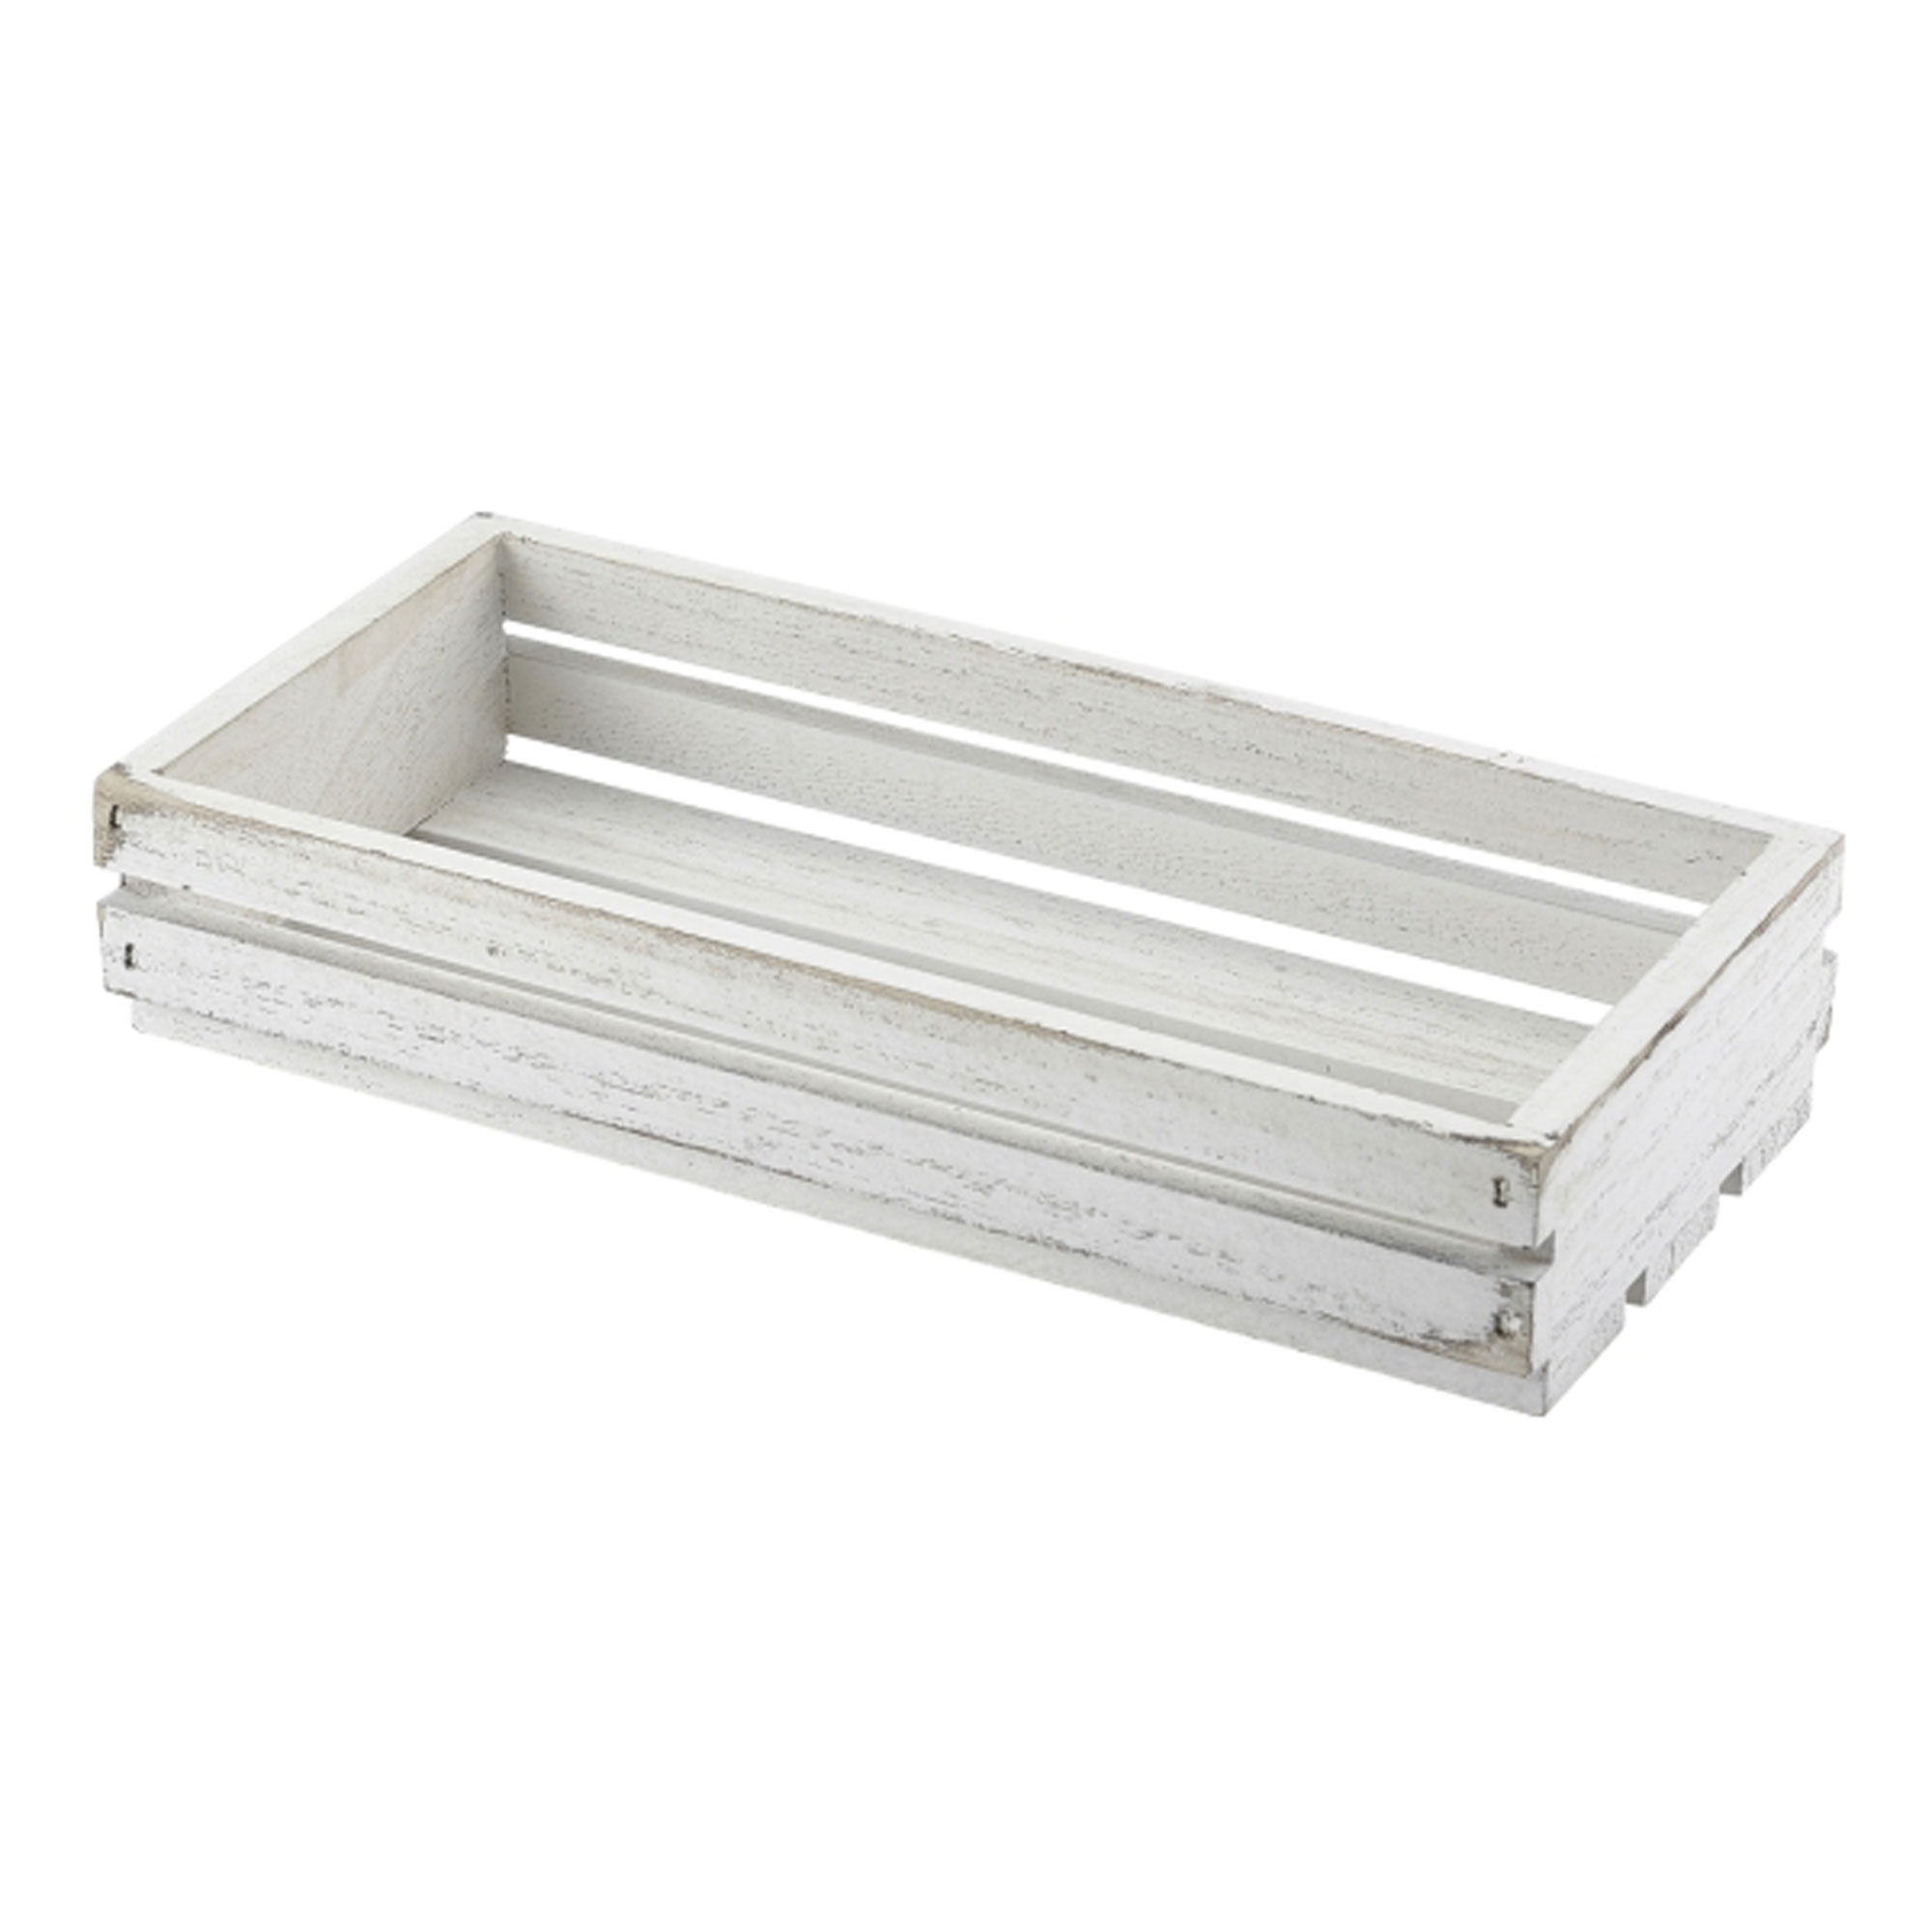 Genware Wooden Crate White Wash Finish 25 x 12 x 5cm